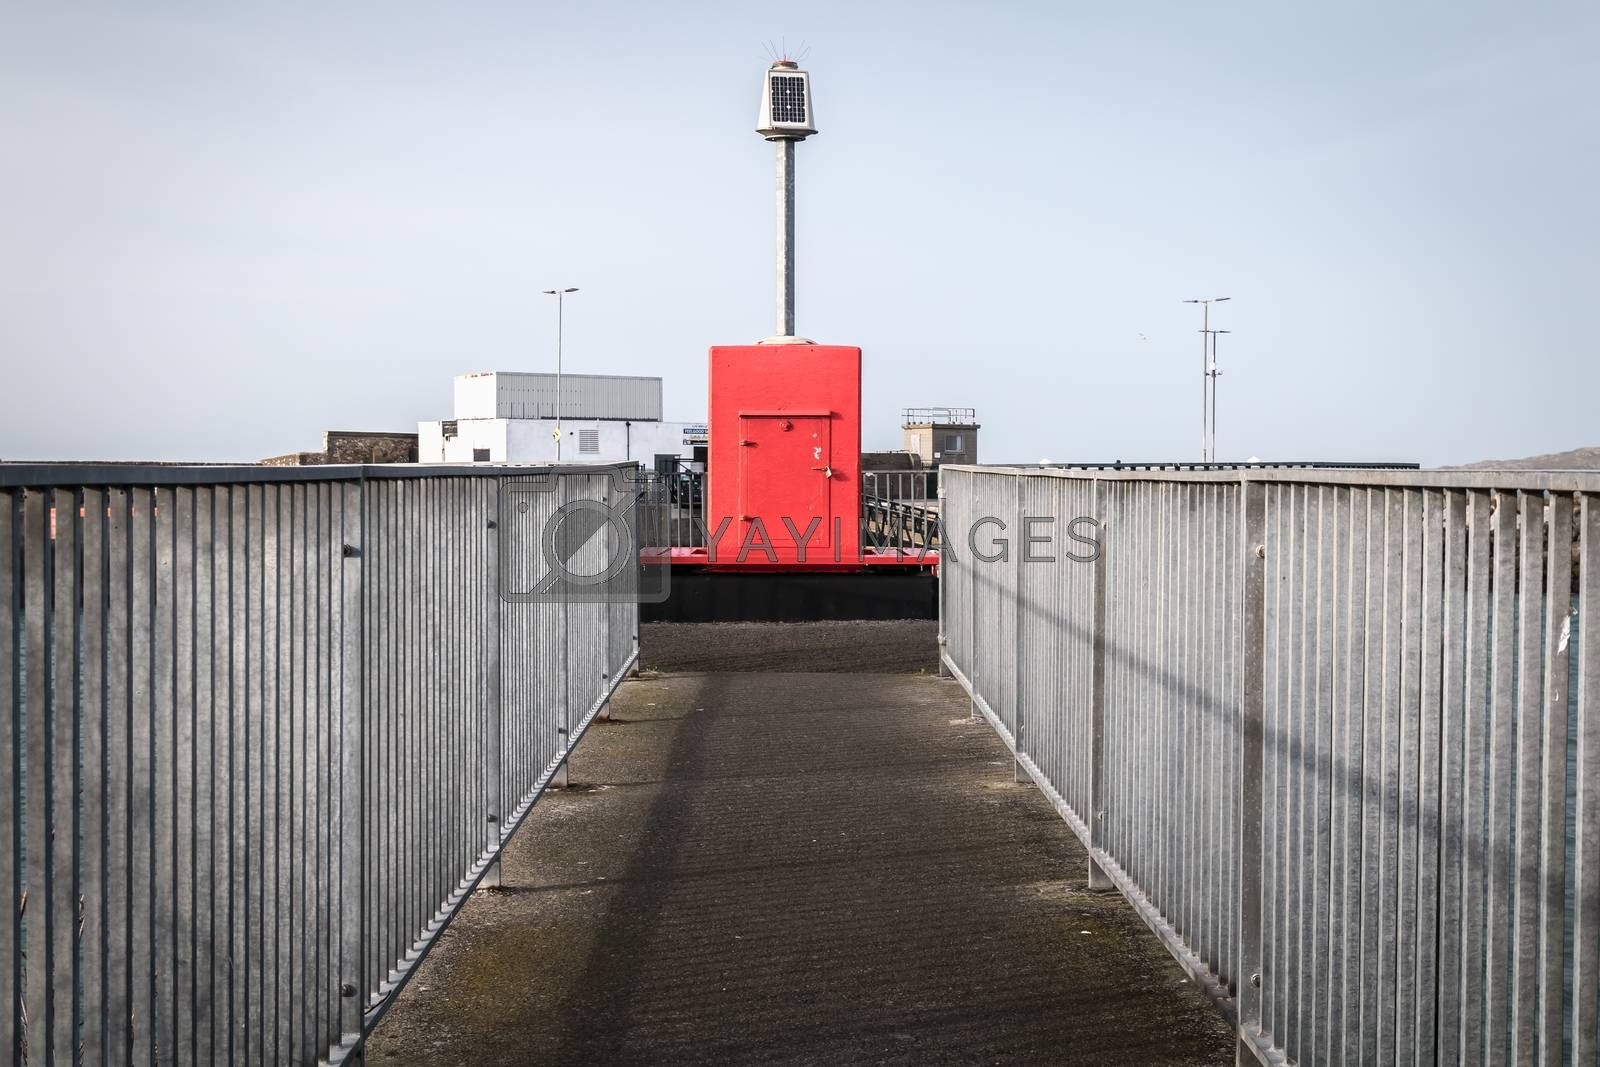 Howth near Dublin, Ireland - February 15, 2019: Illuminated signal for boat guidance at the entrance to Howth harbor on a winter day